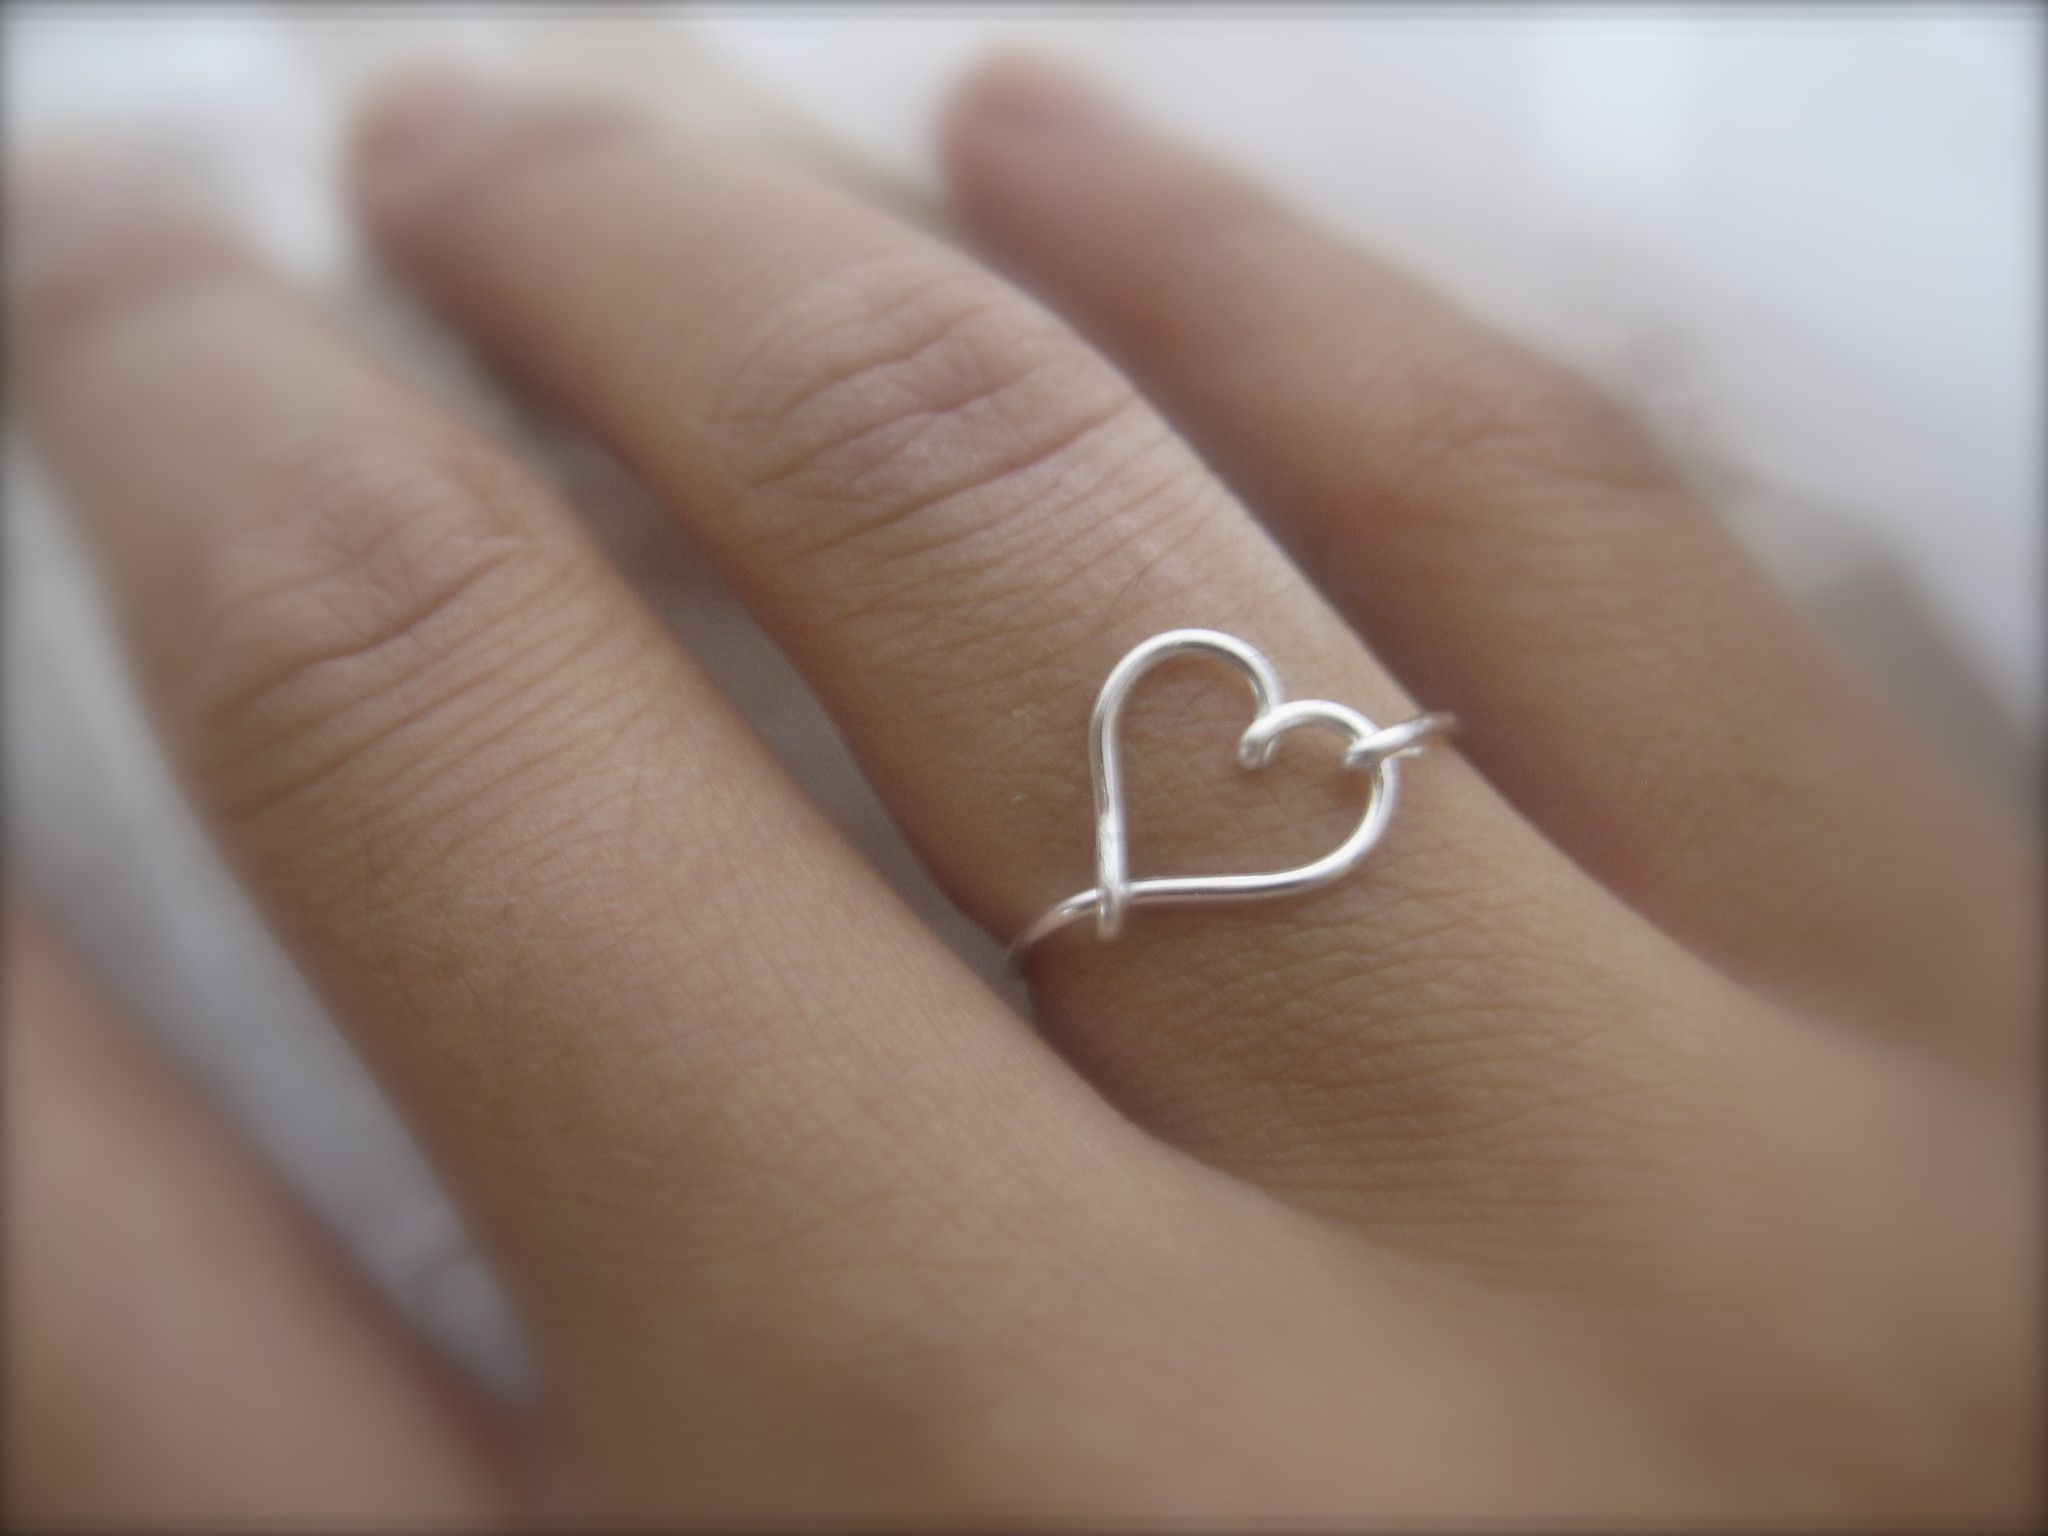 A simple heart-shaped ring! More 95be9df3007c7